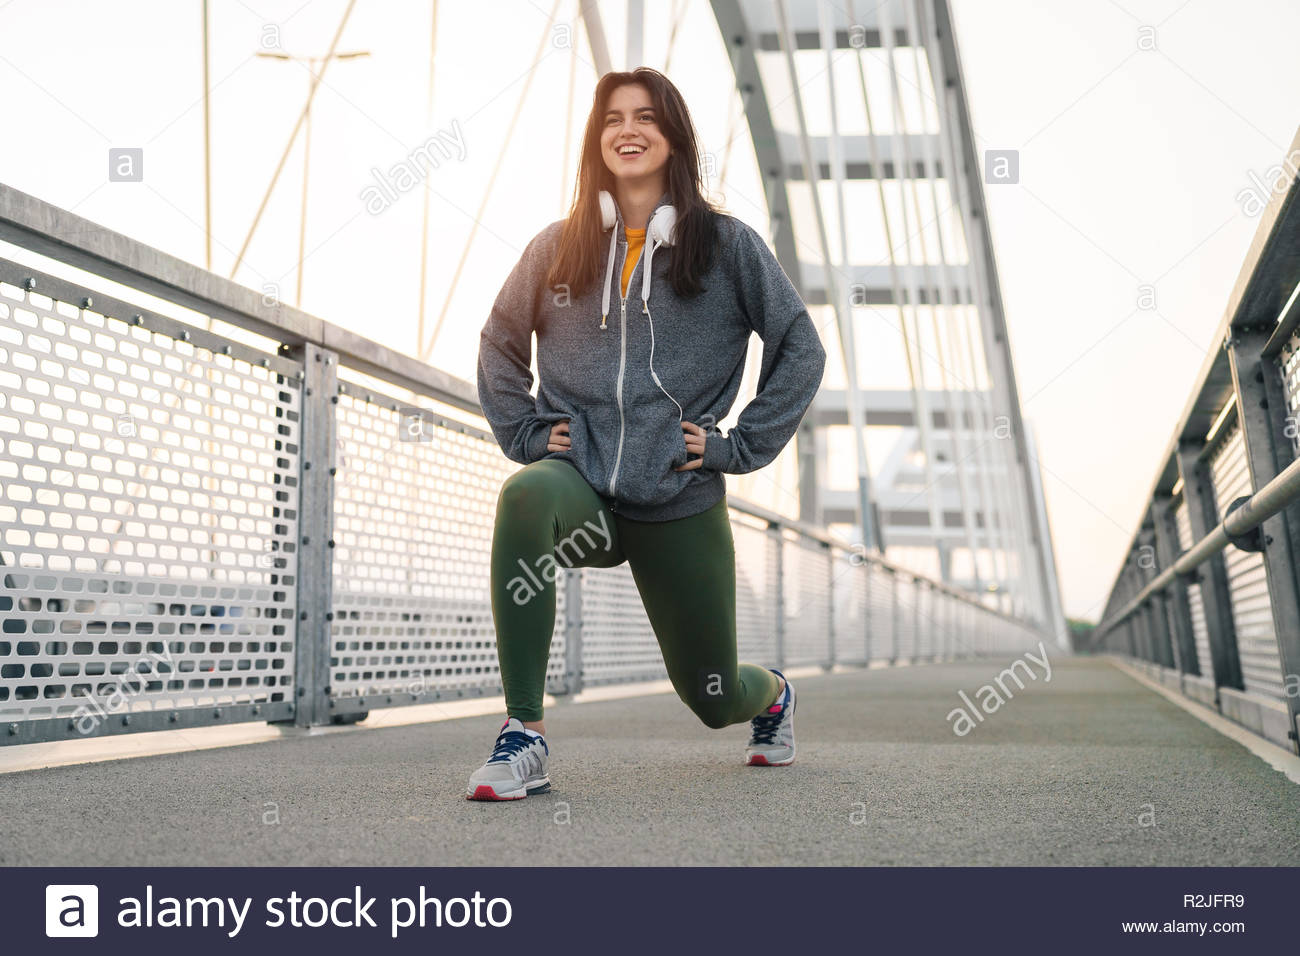 Young sportswoman warming up on a bridge while smiling in the morning. - Stock Image